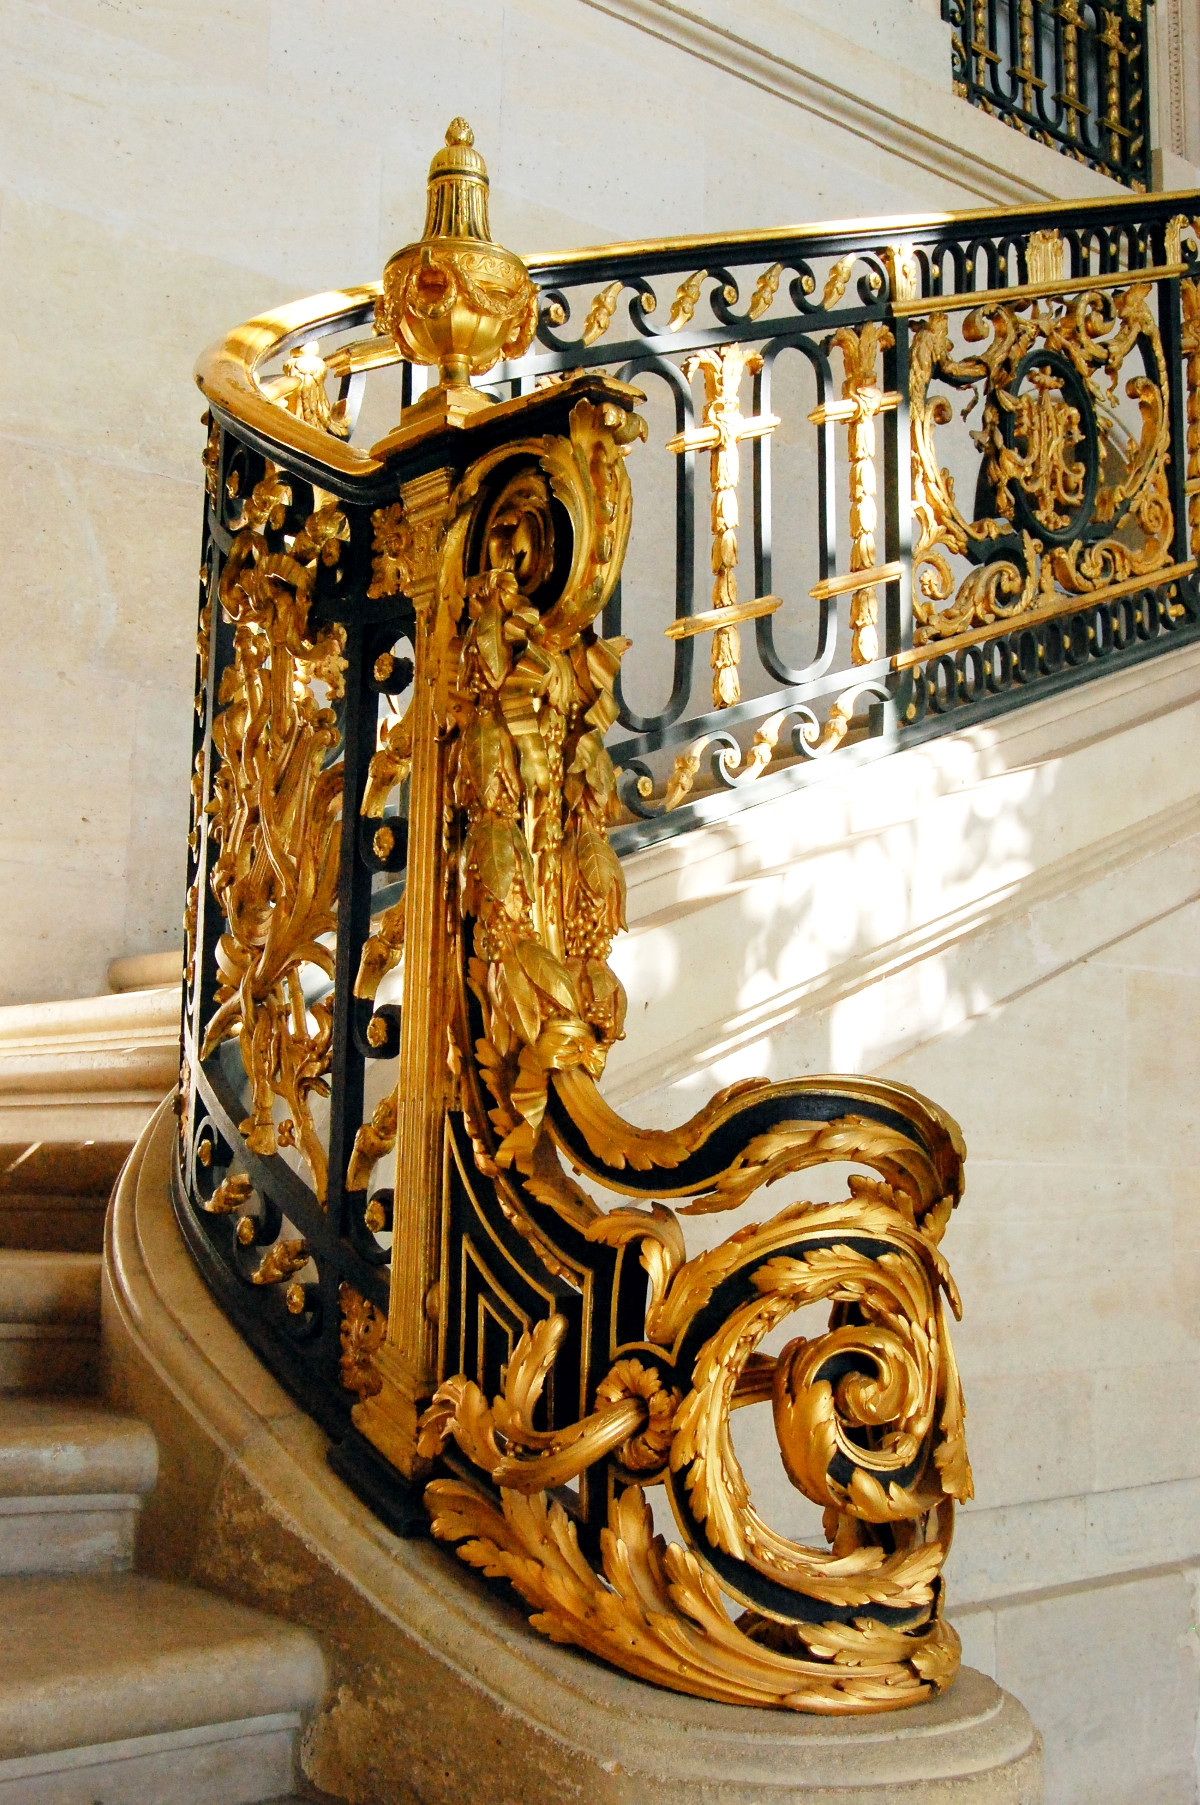 Stairway inside the Petit Trianon. Credit Trizek